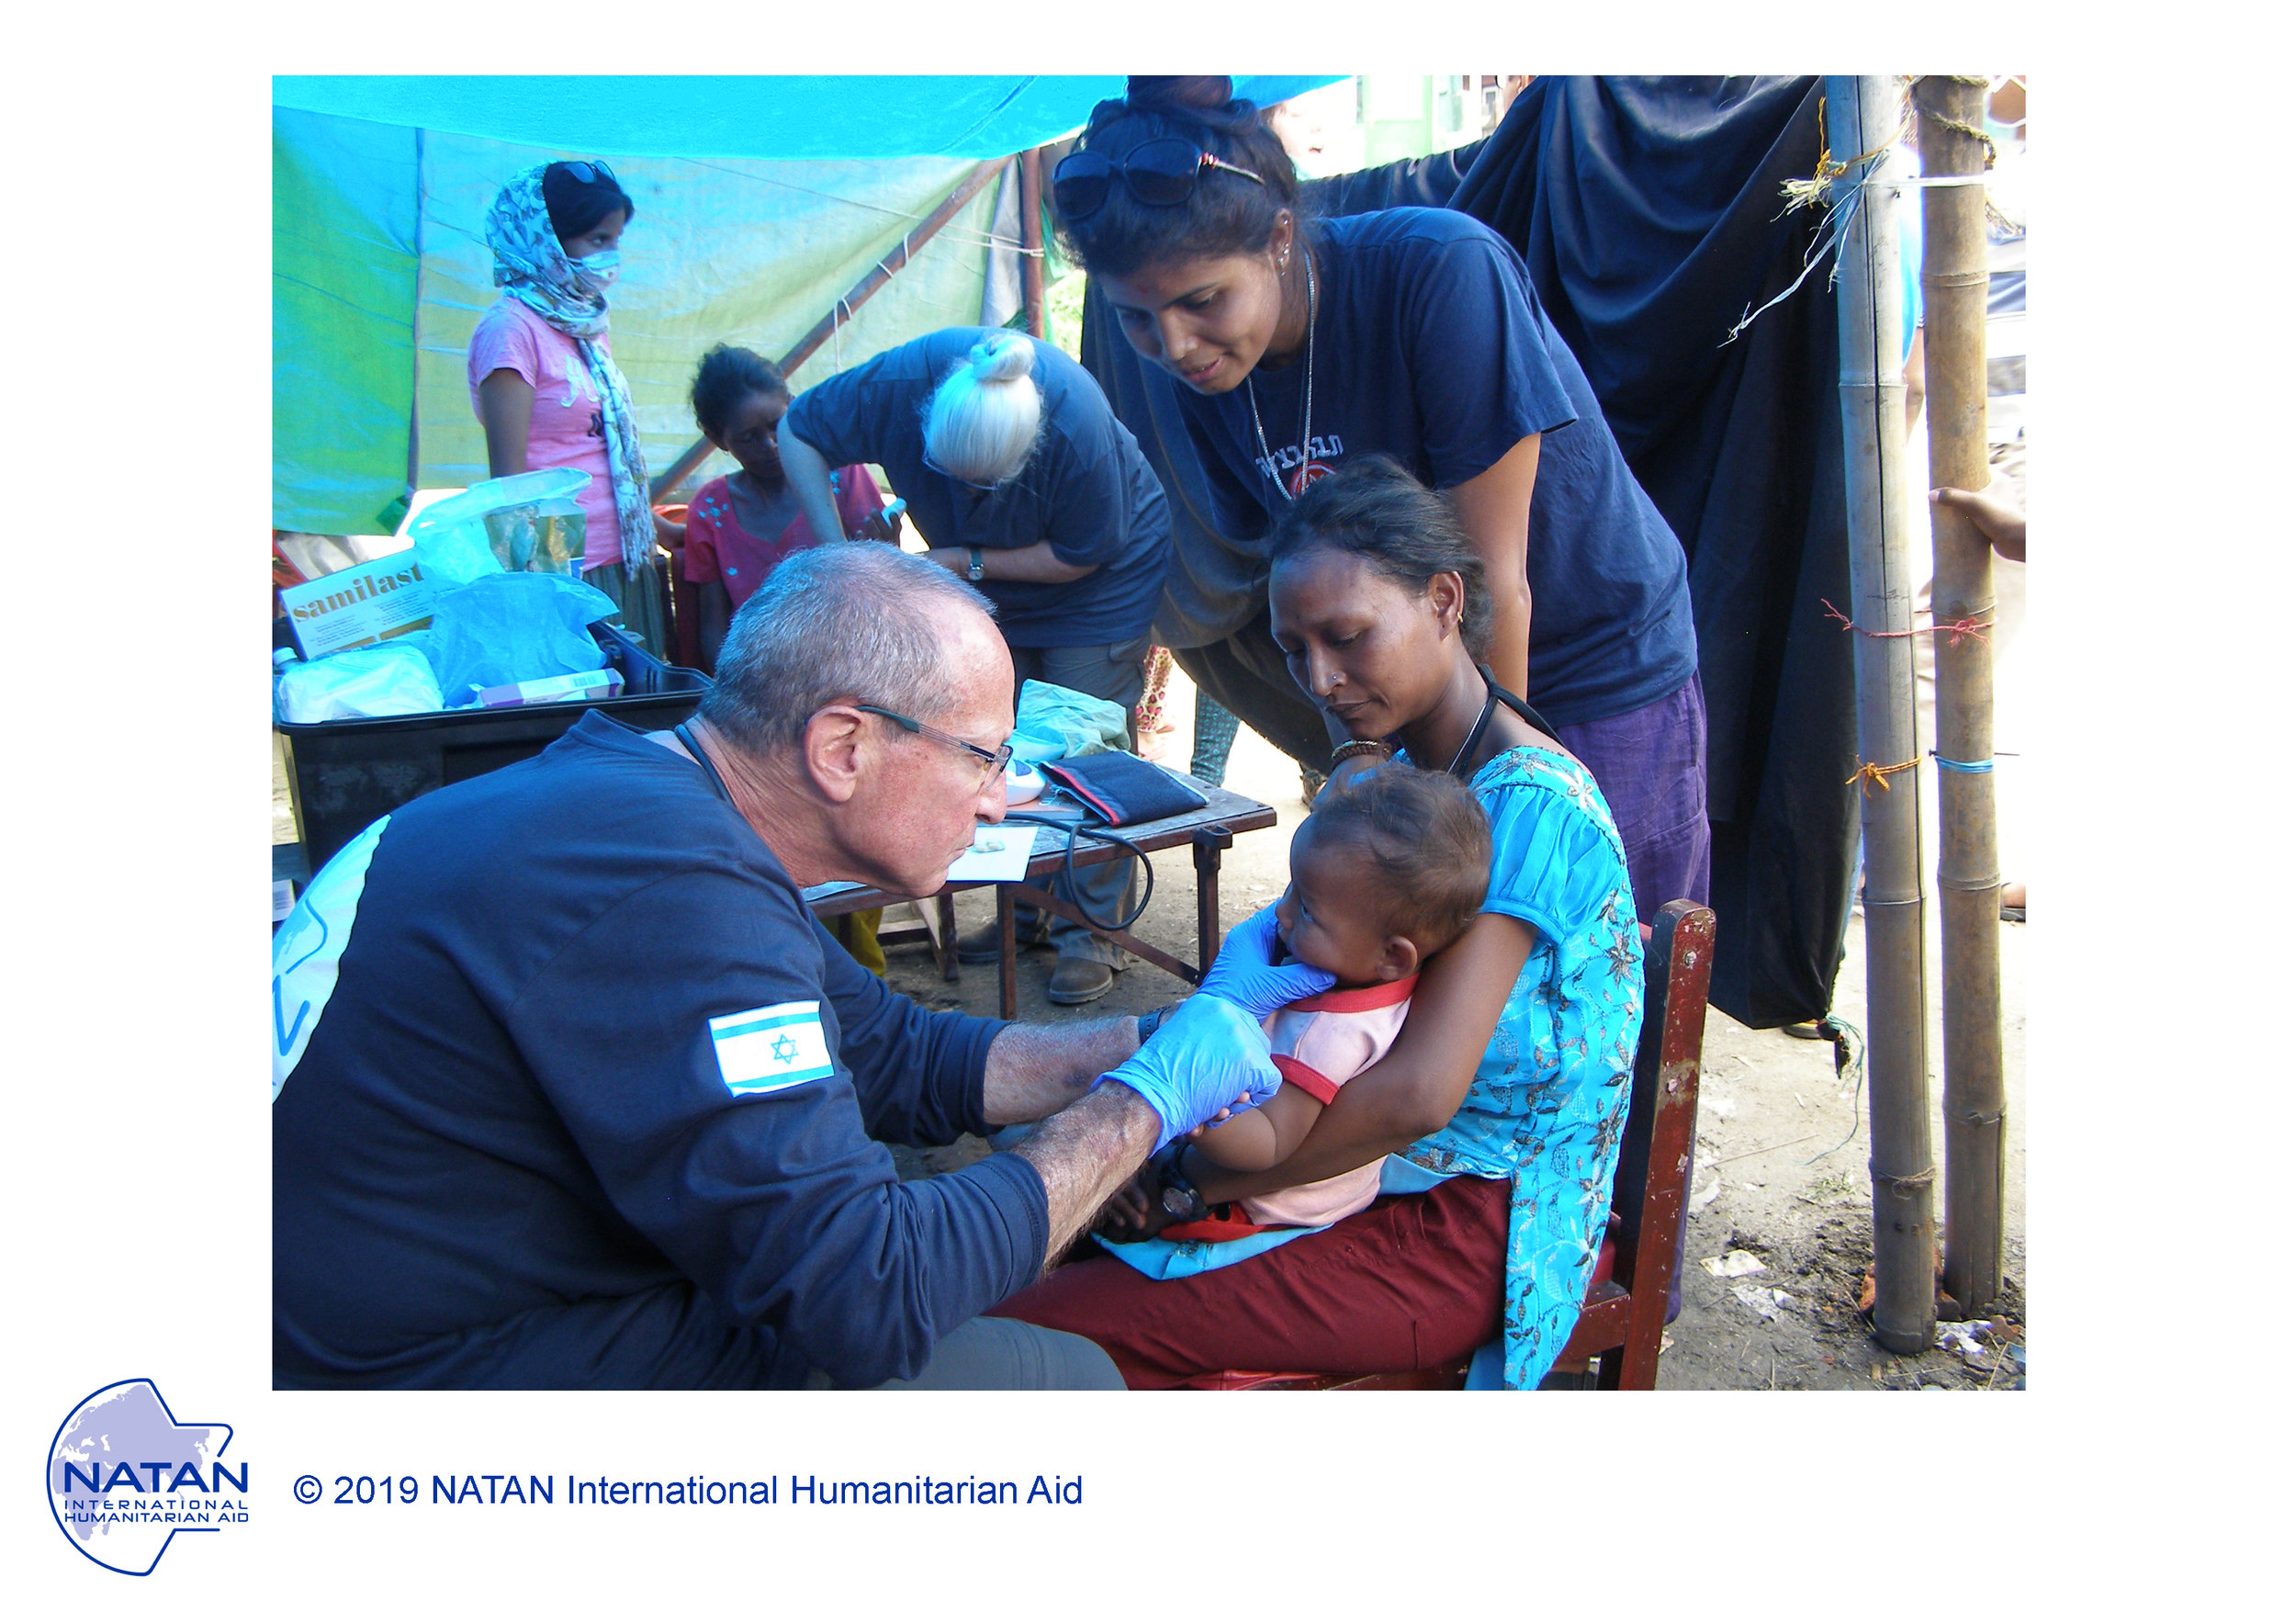 nepal 2015 - natan medical team treating earthquake survivors. seen here, natan md, social worker, and nurse working together as one multidisciplinary team.